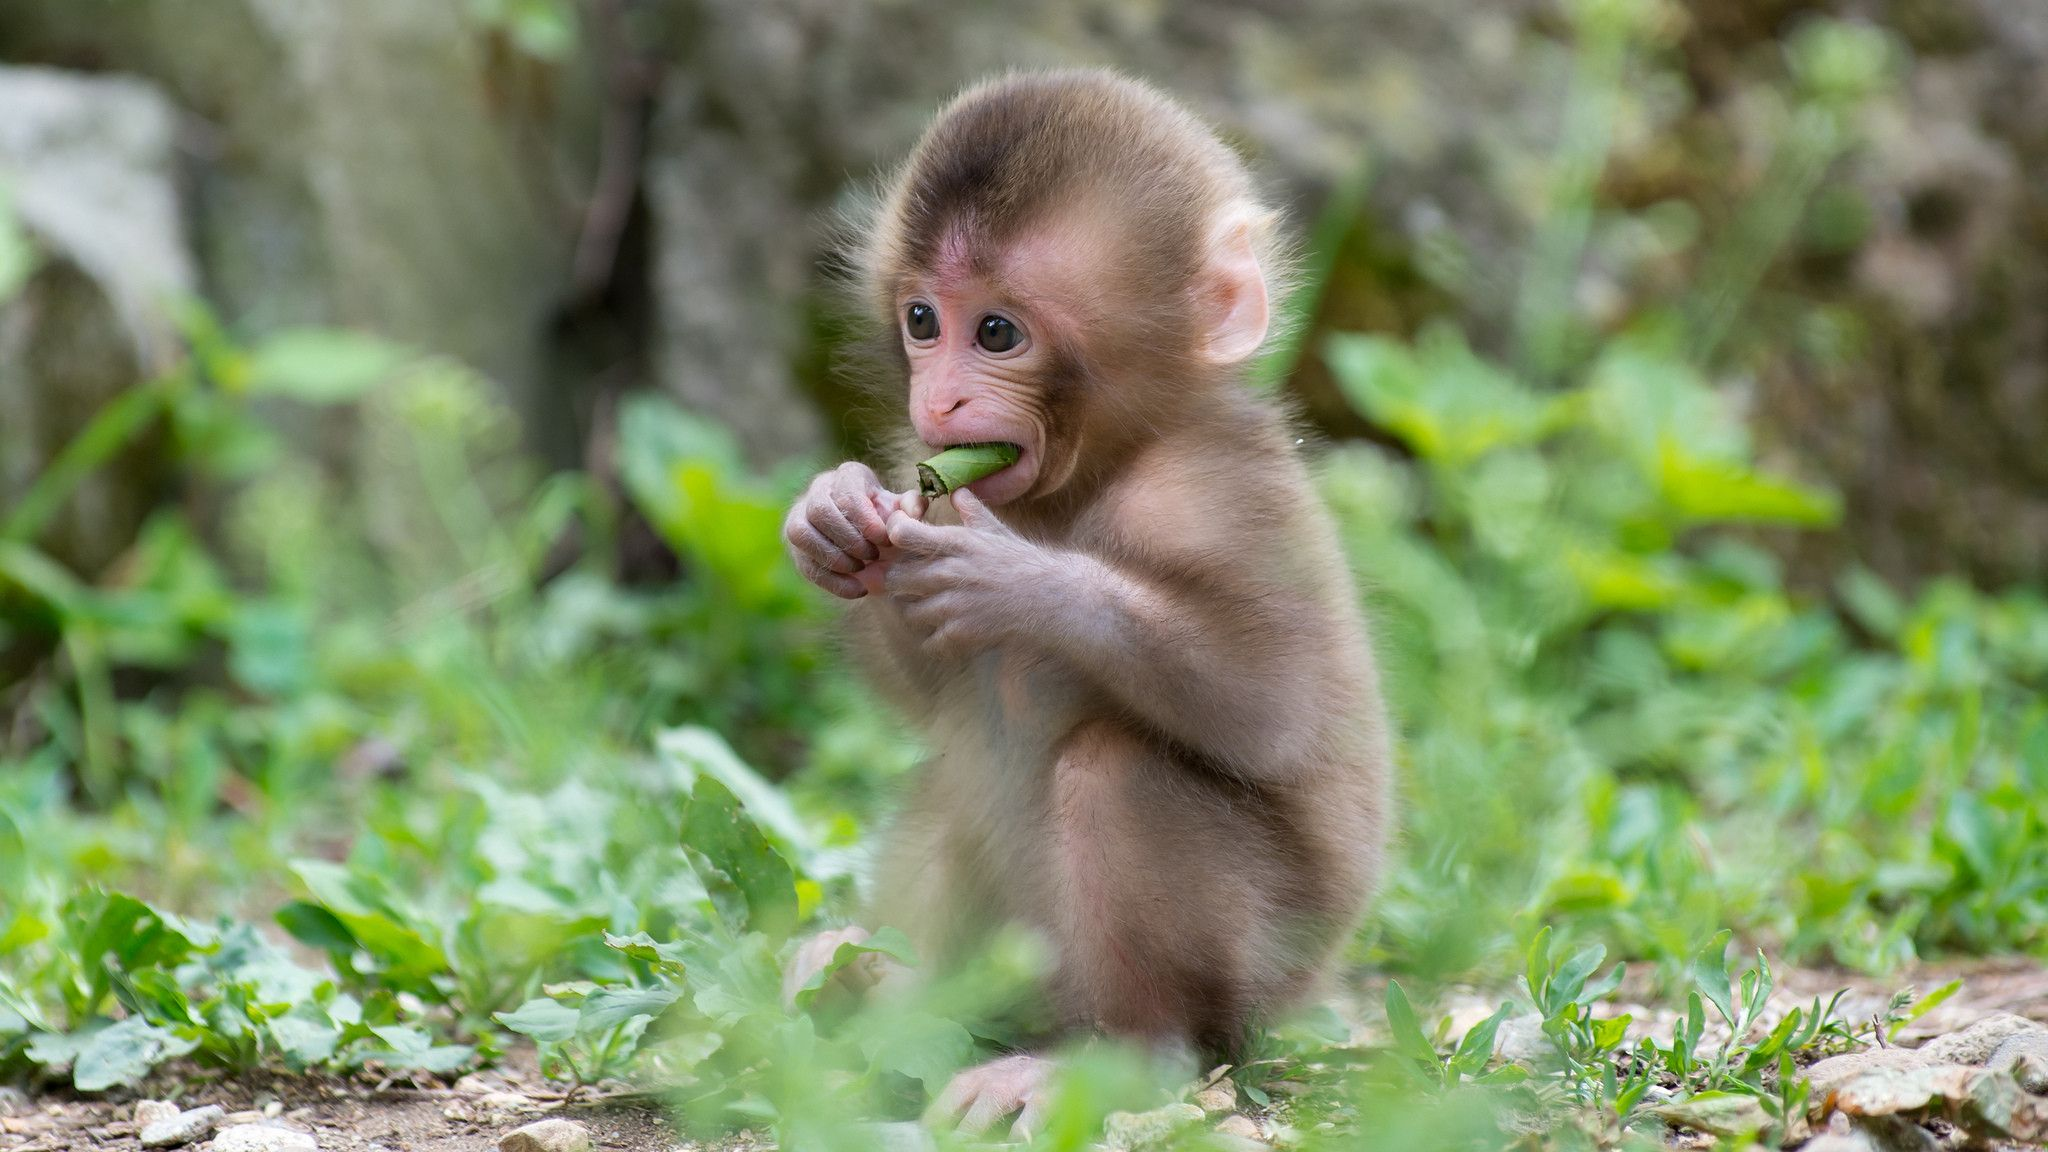 Baby Monkey Wallpapers Top Free Baby Monkey Backgrounds Images, Photos, Reviews